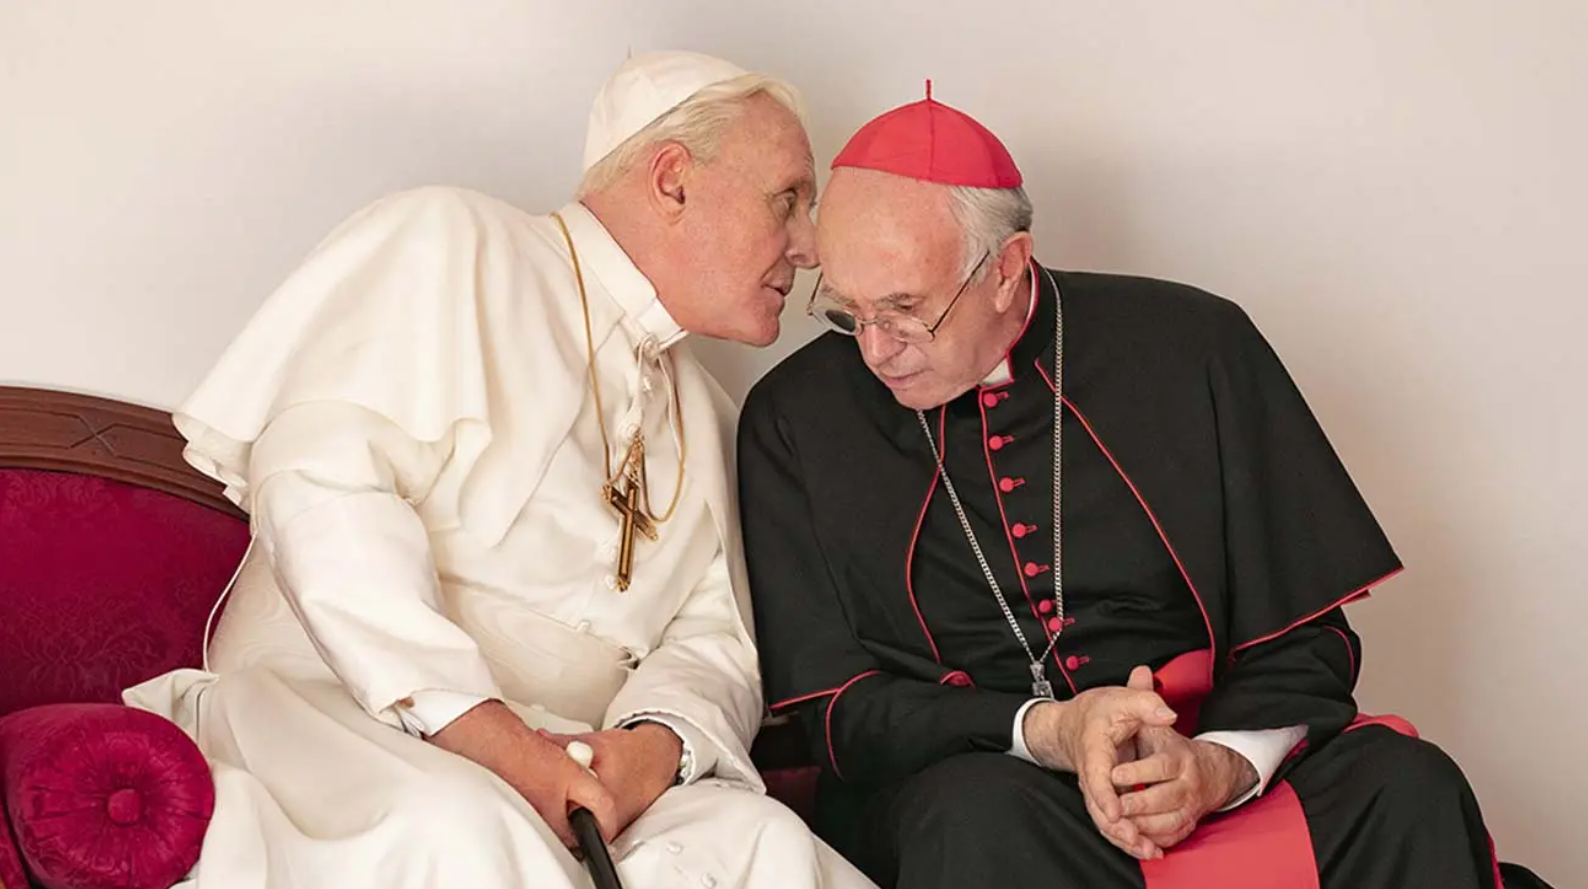 The Two Popes Whistling ABBA